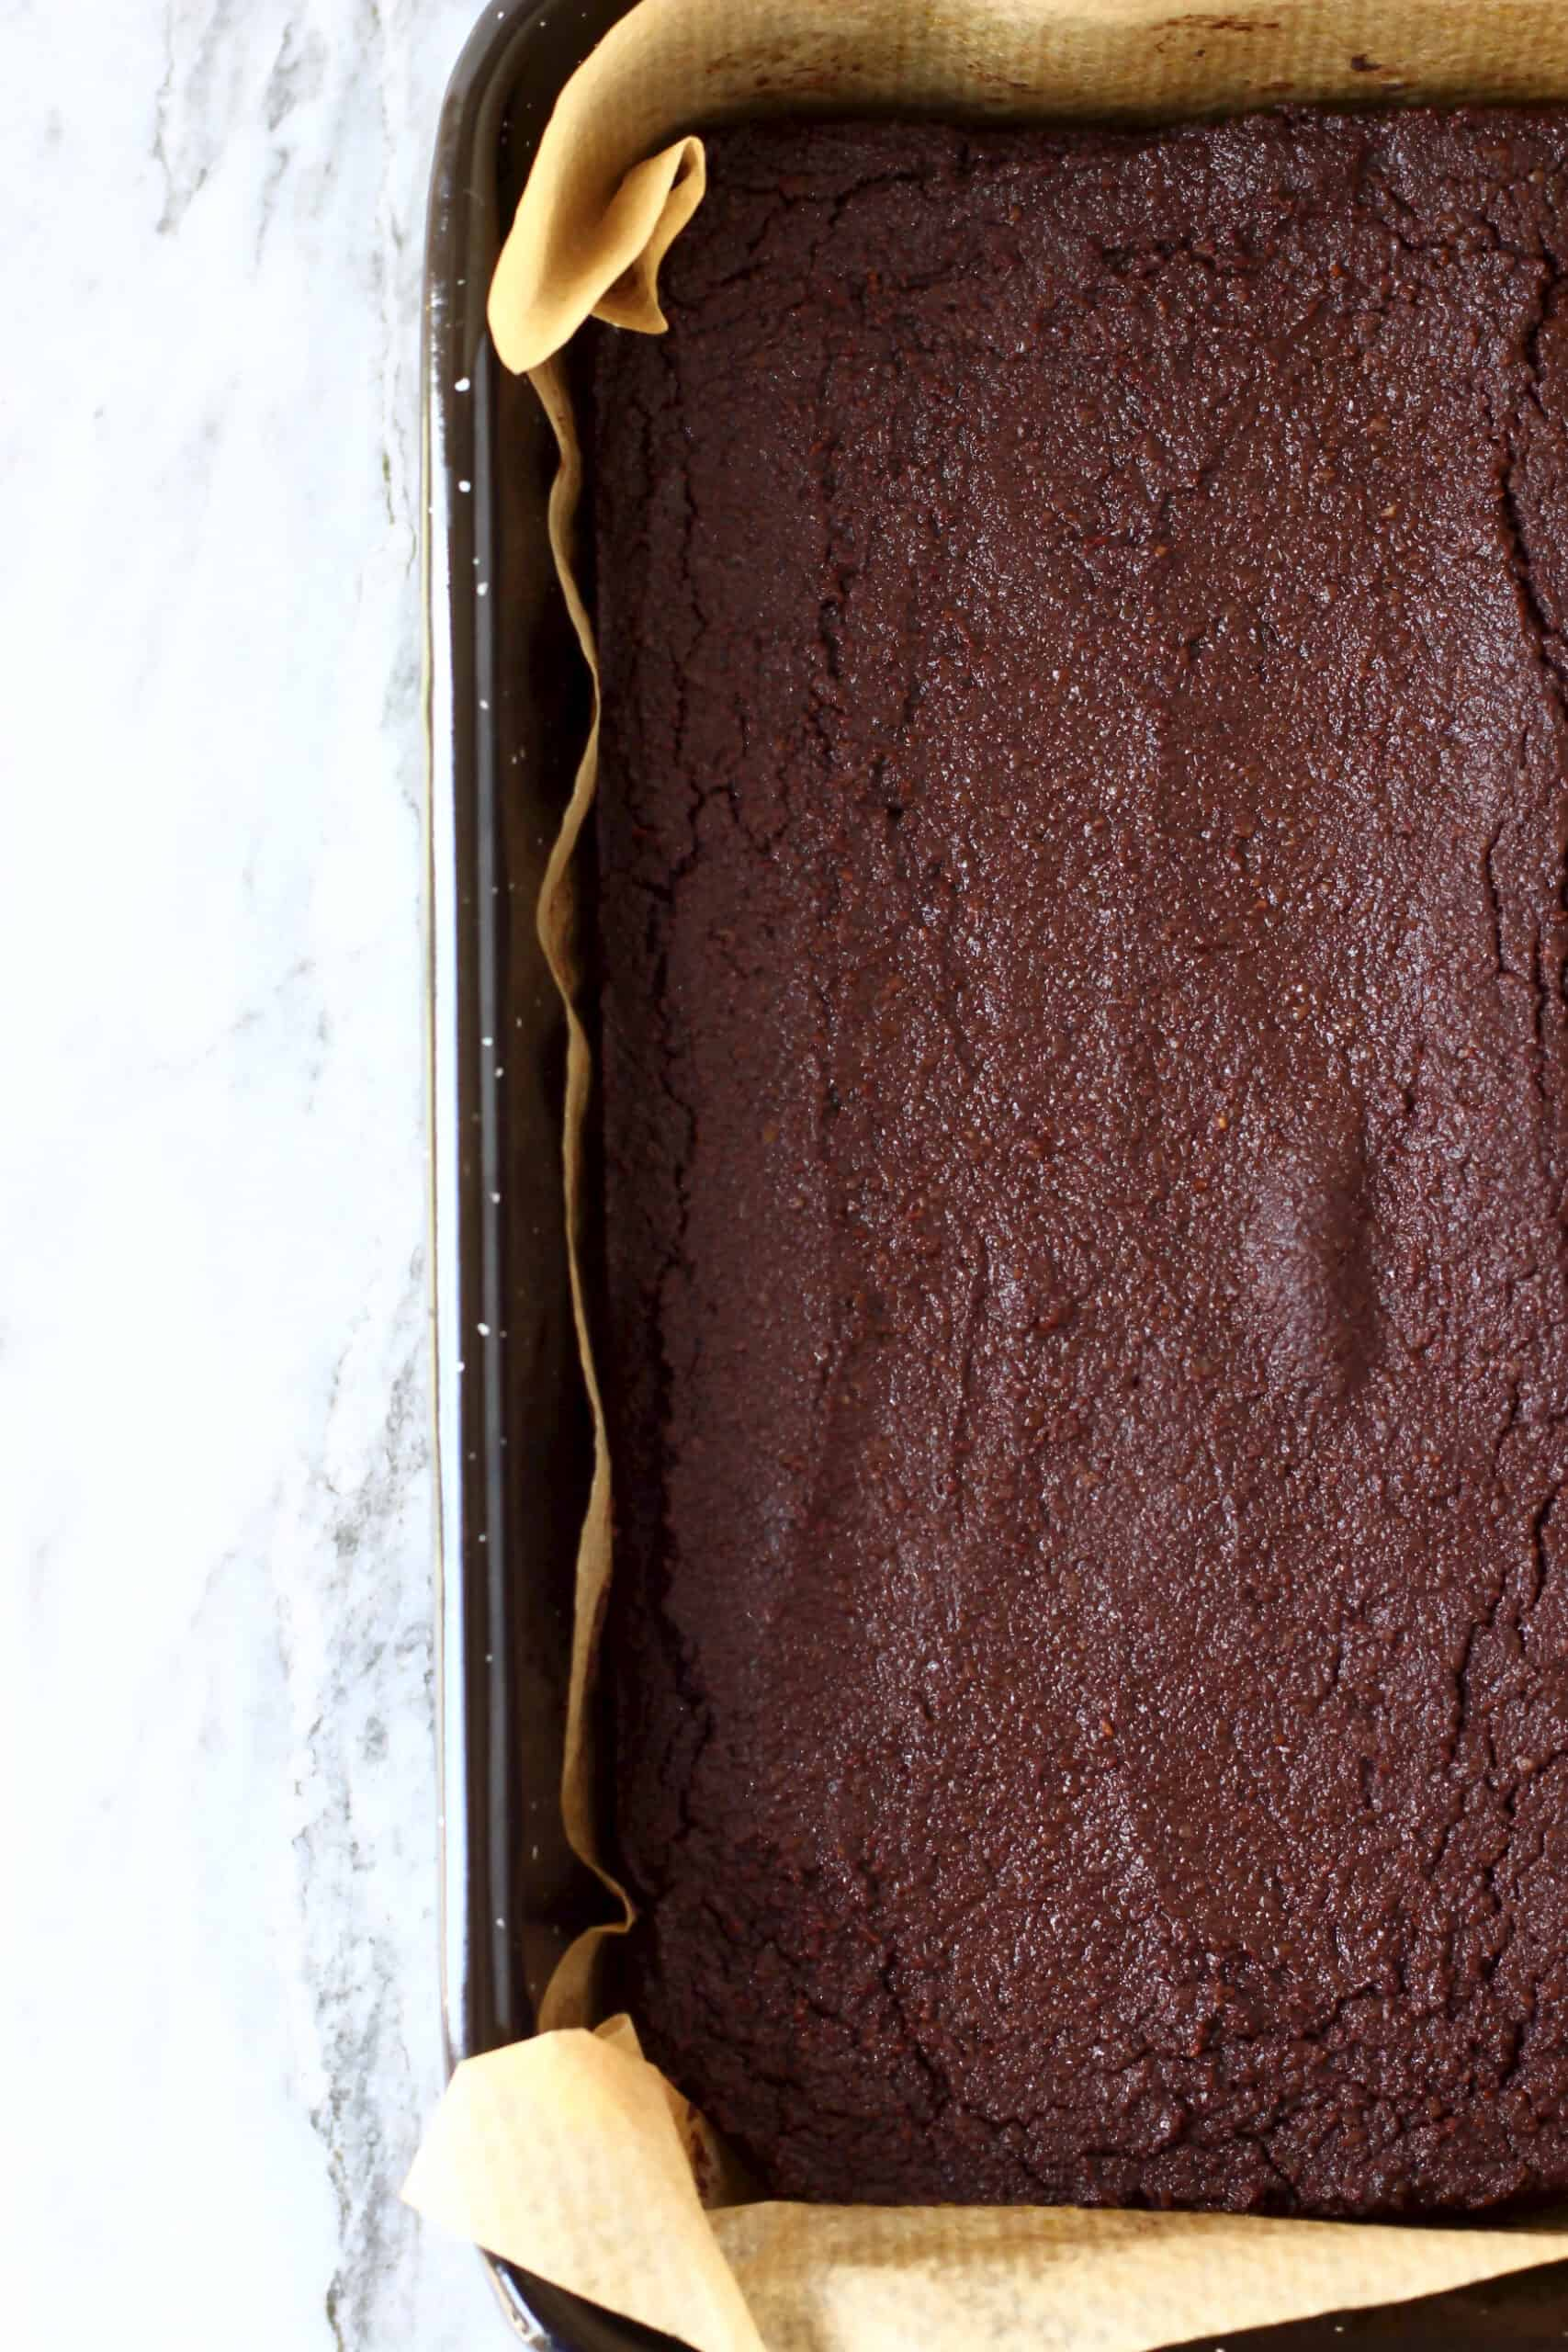 Vegan gluten-free chocolate brownies in a square baking tin lined with baking paper